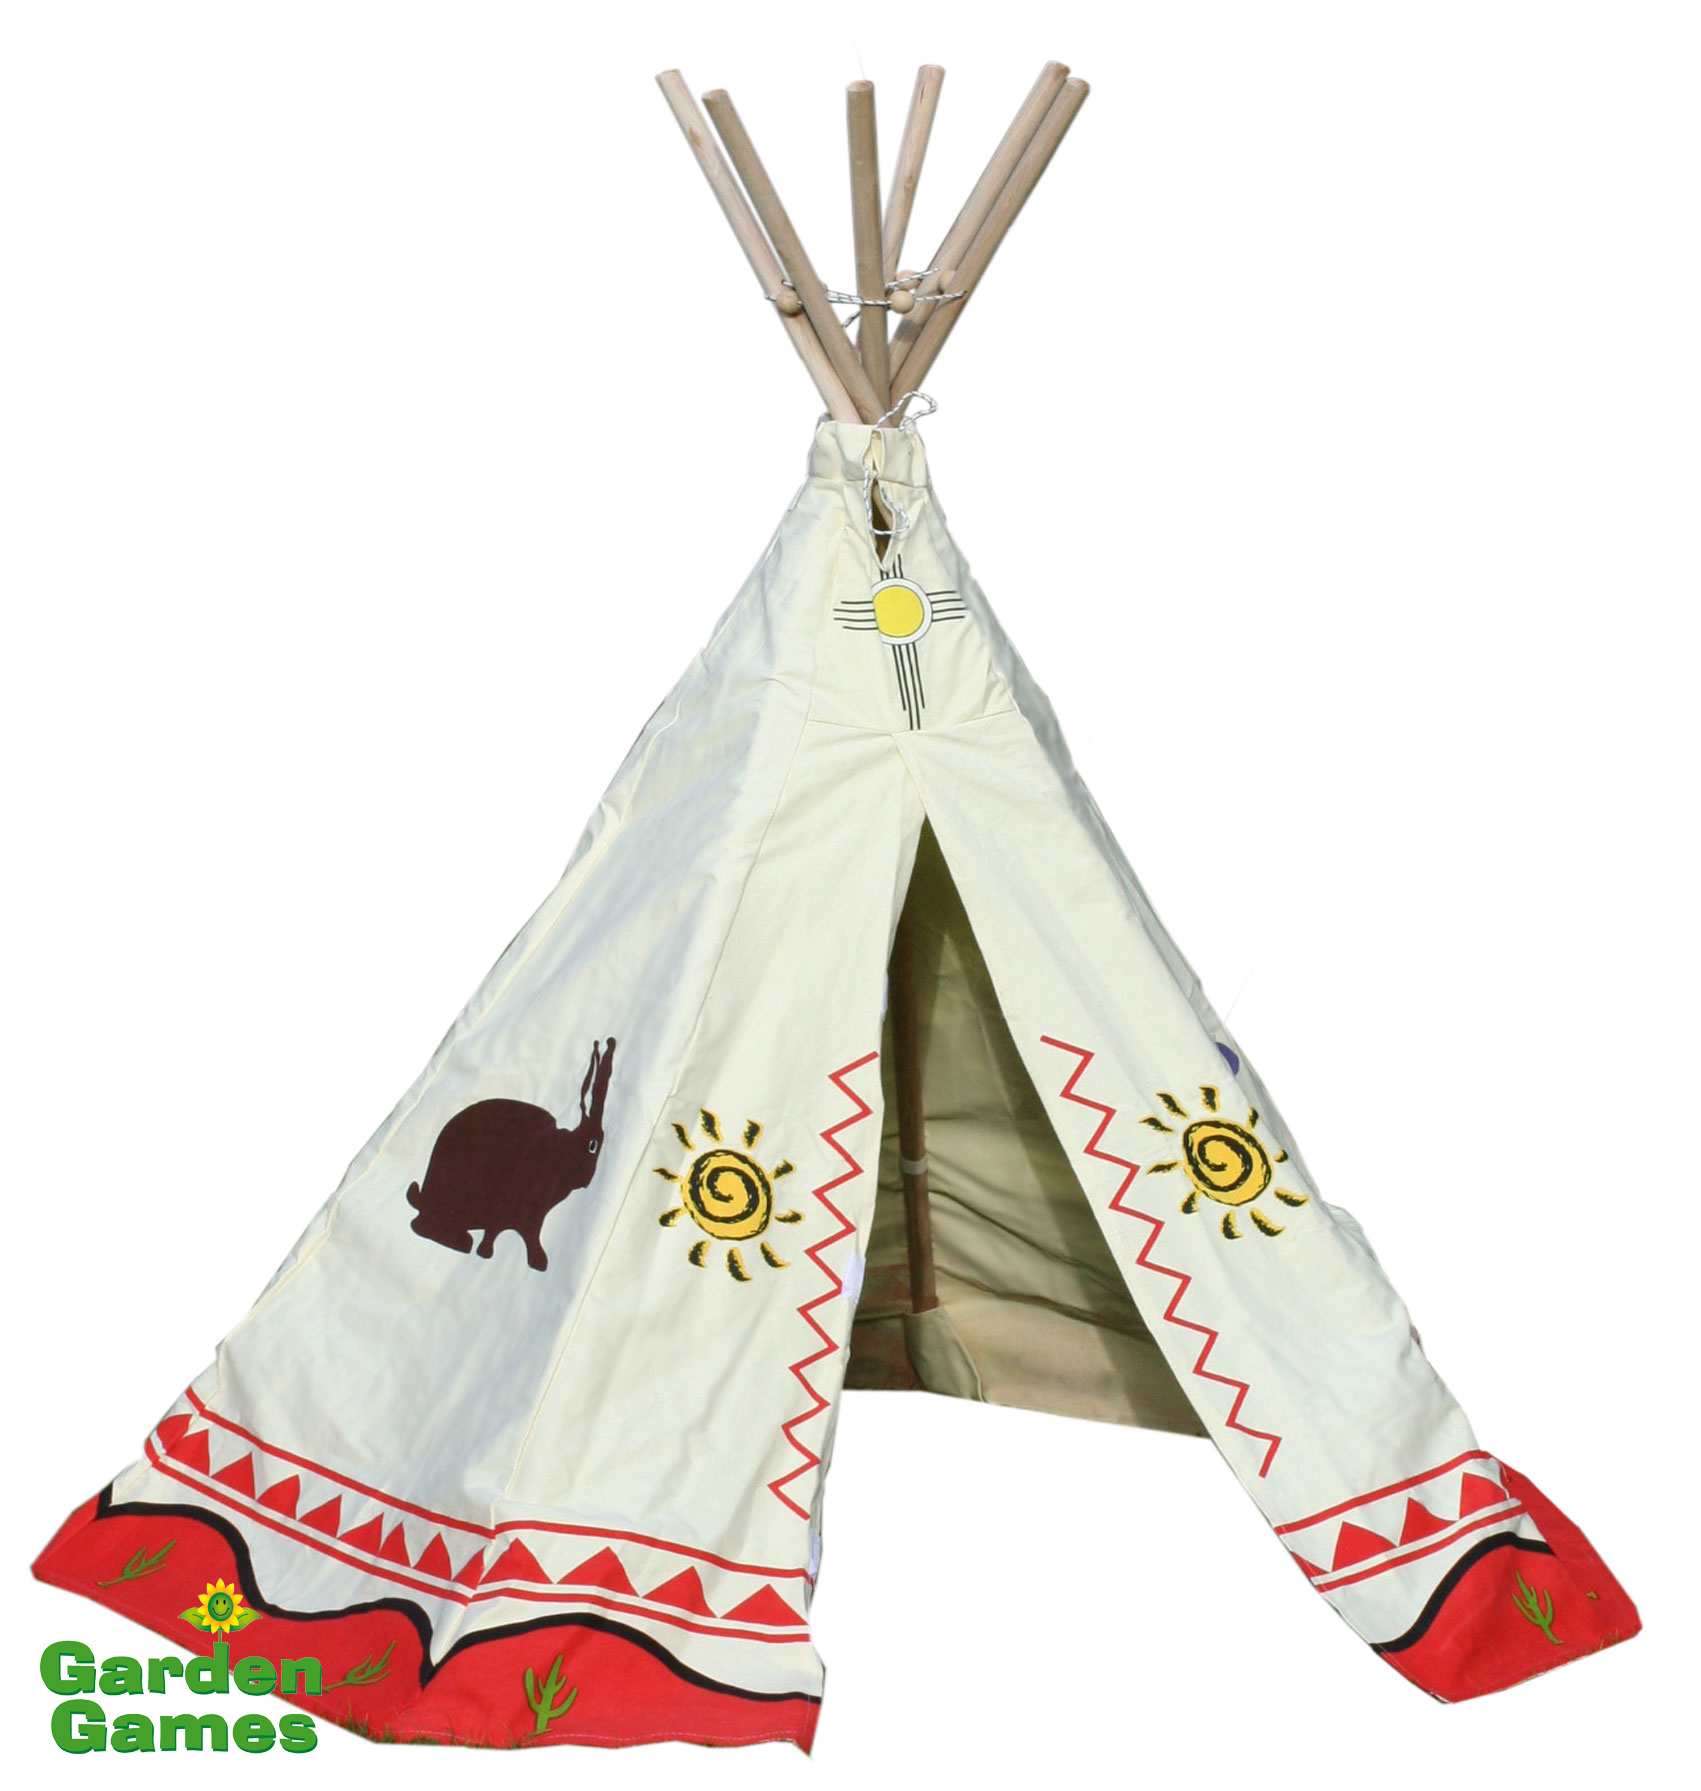 3025 Wigwam play tent empty.jpg  sc 1 st  Garden Games Ltd & Index of /Garden Games/Garden Games/White Back Ground Images/PLAY ...